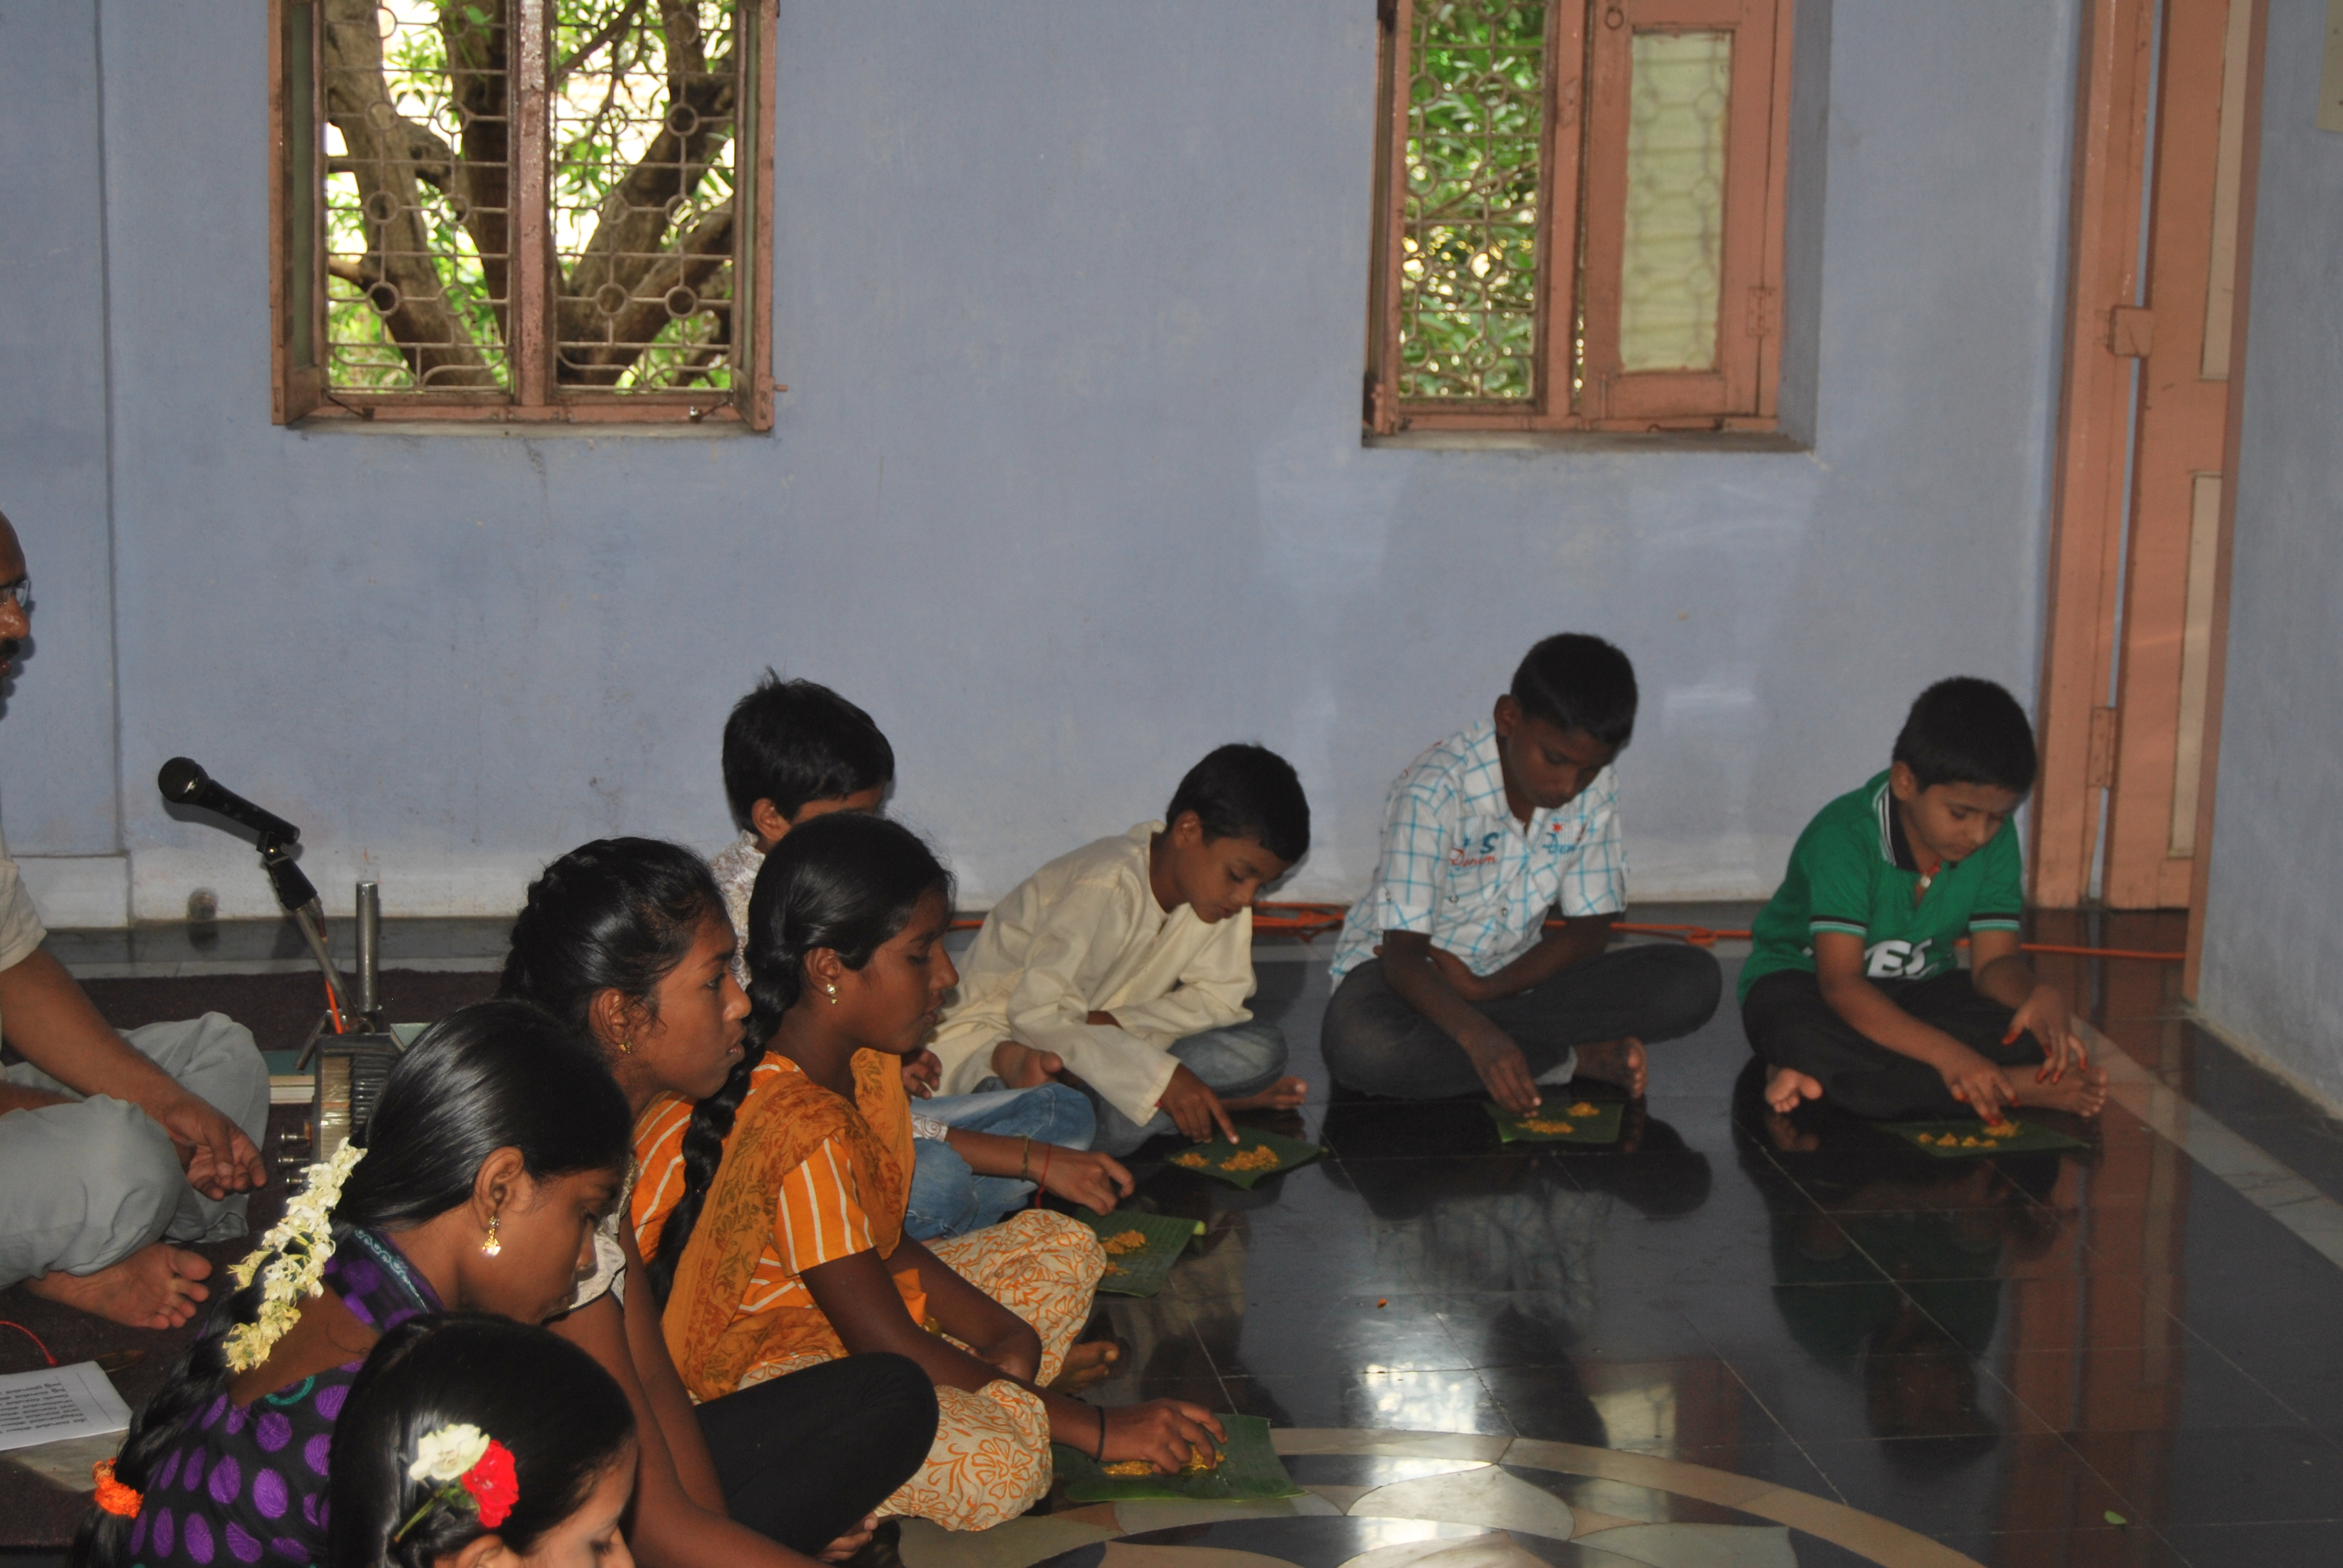 Children joining the Puja